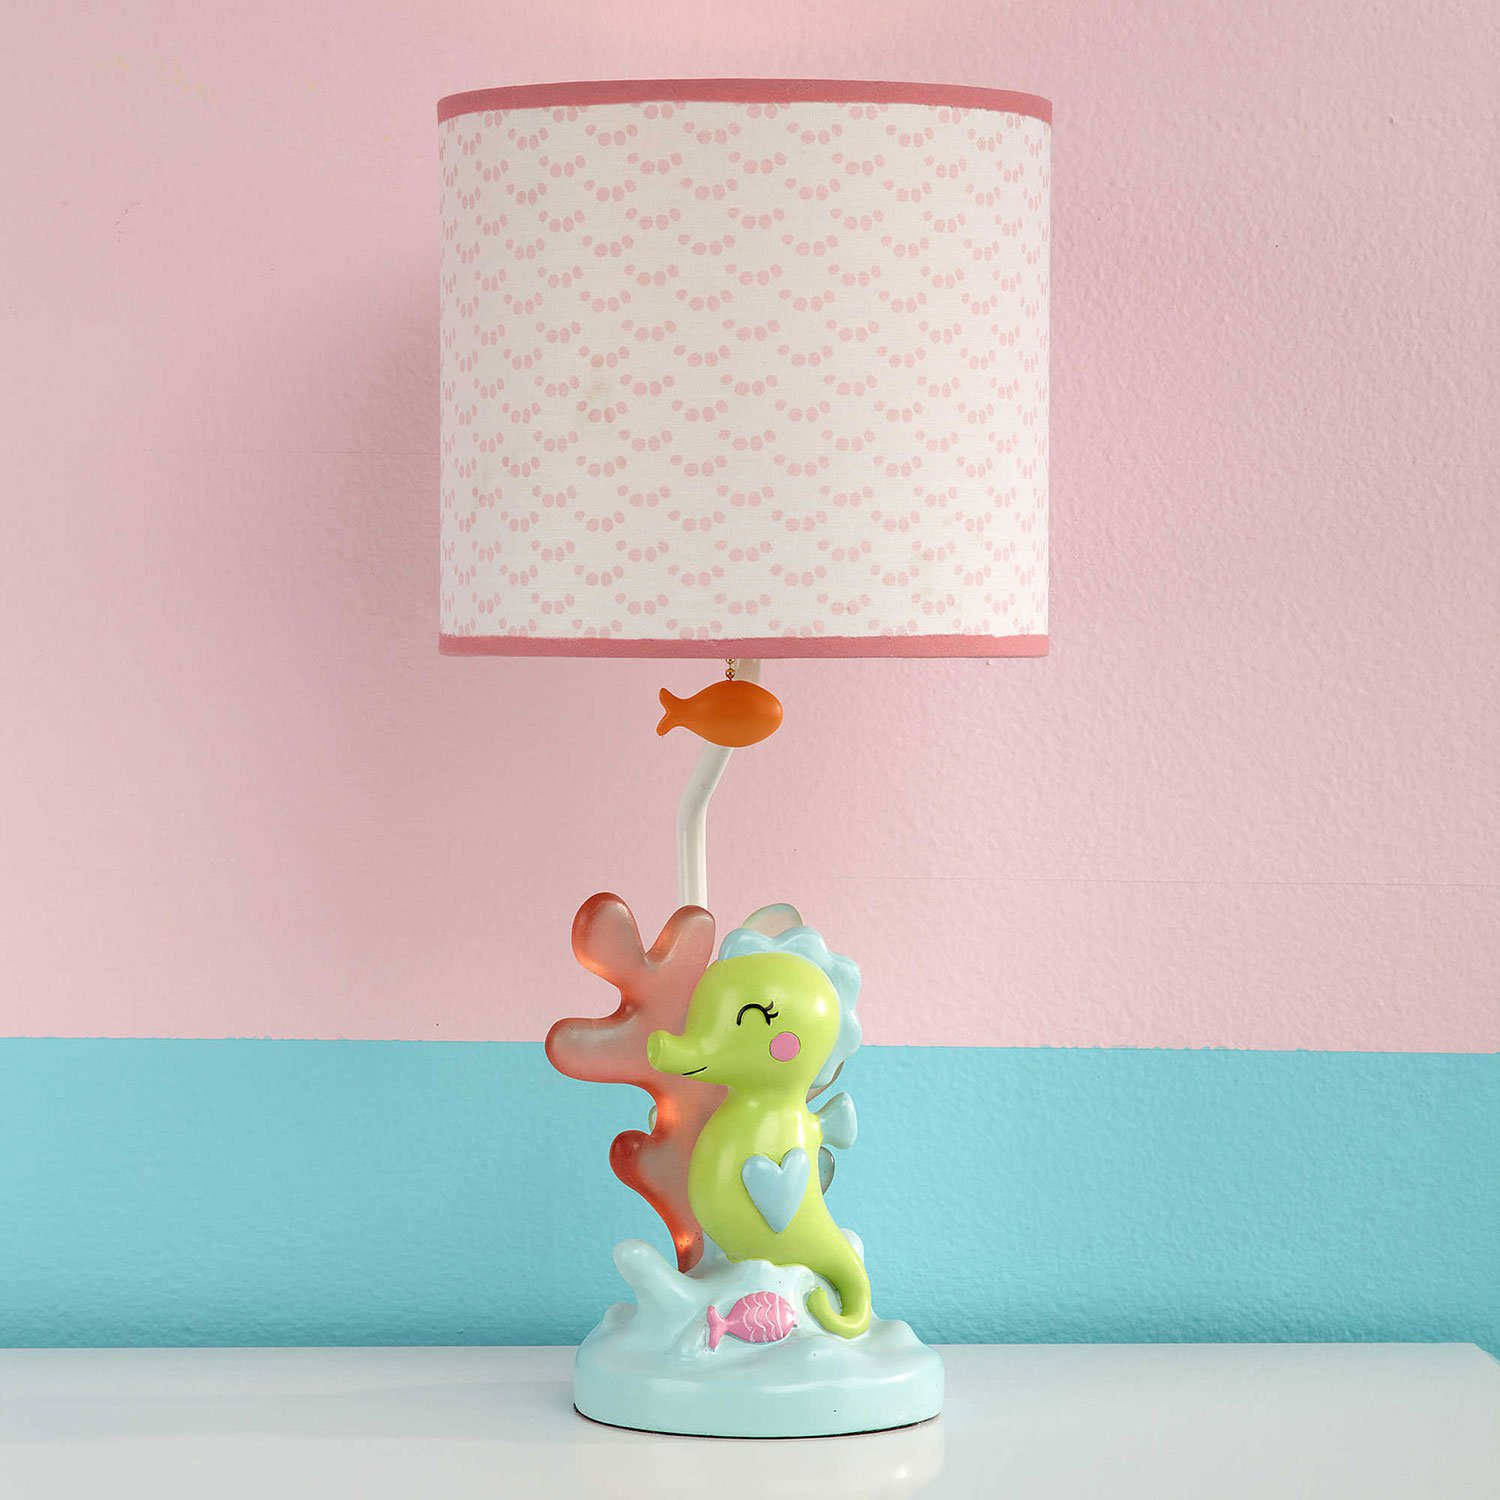 Amazon.com: Carter's Sea Collection Lamp and Shade, Pink/Blue ...